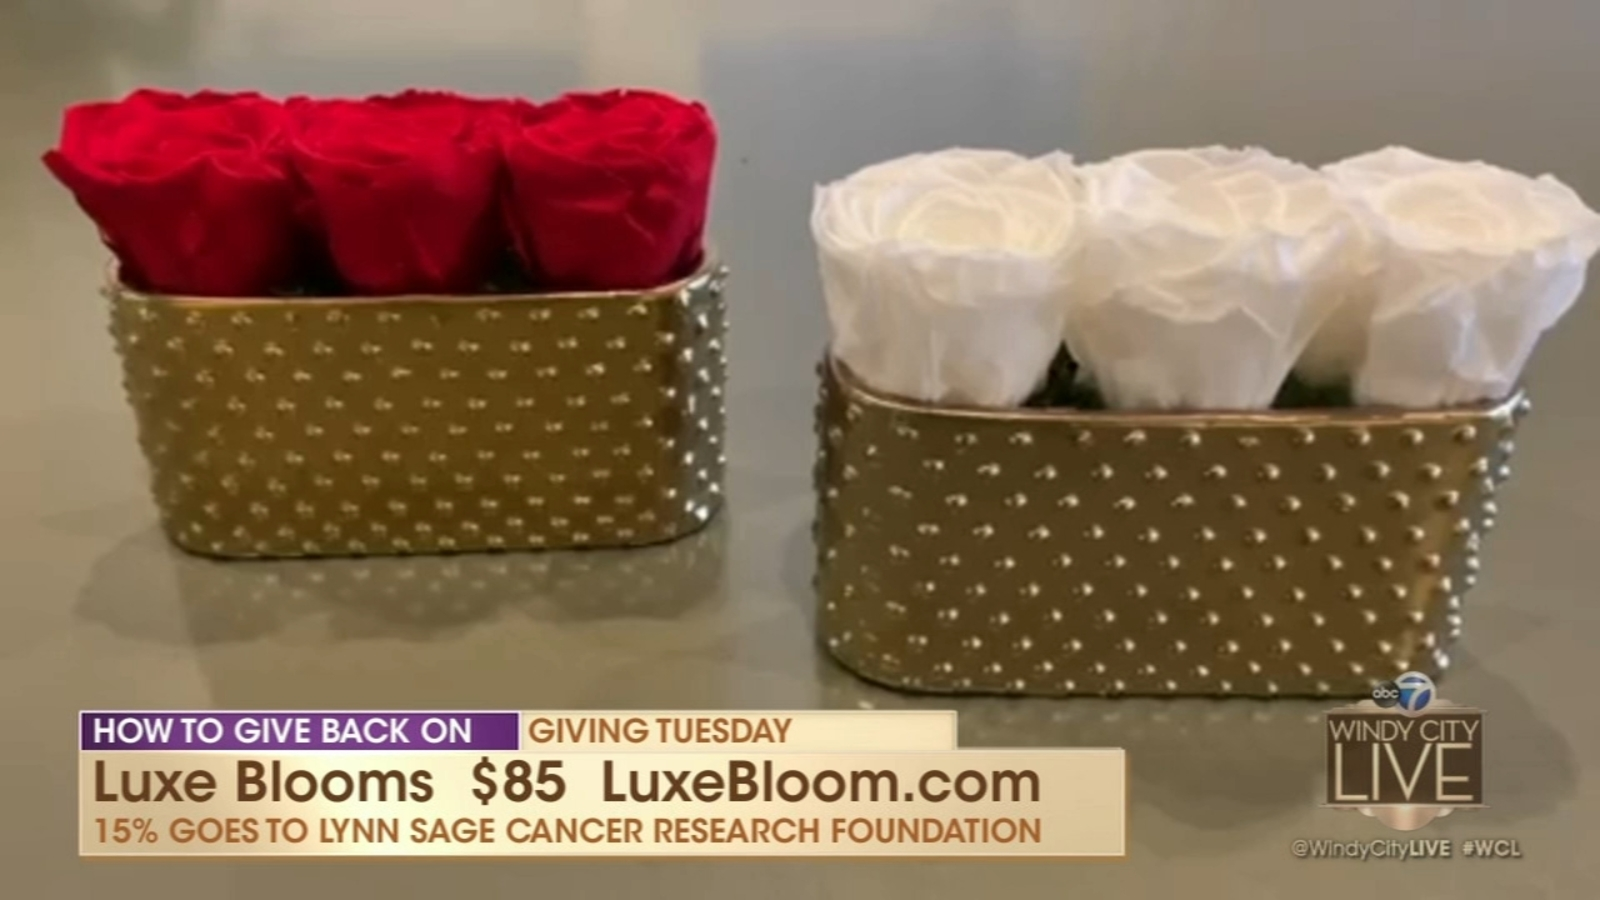 Giving Tuesday: Gifts that give back - ABC7 Chicago